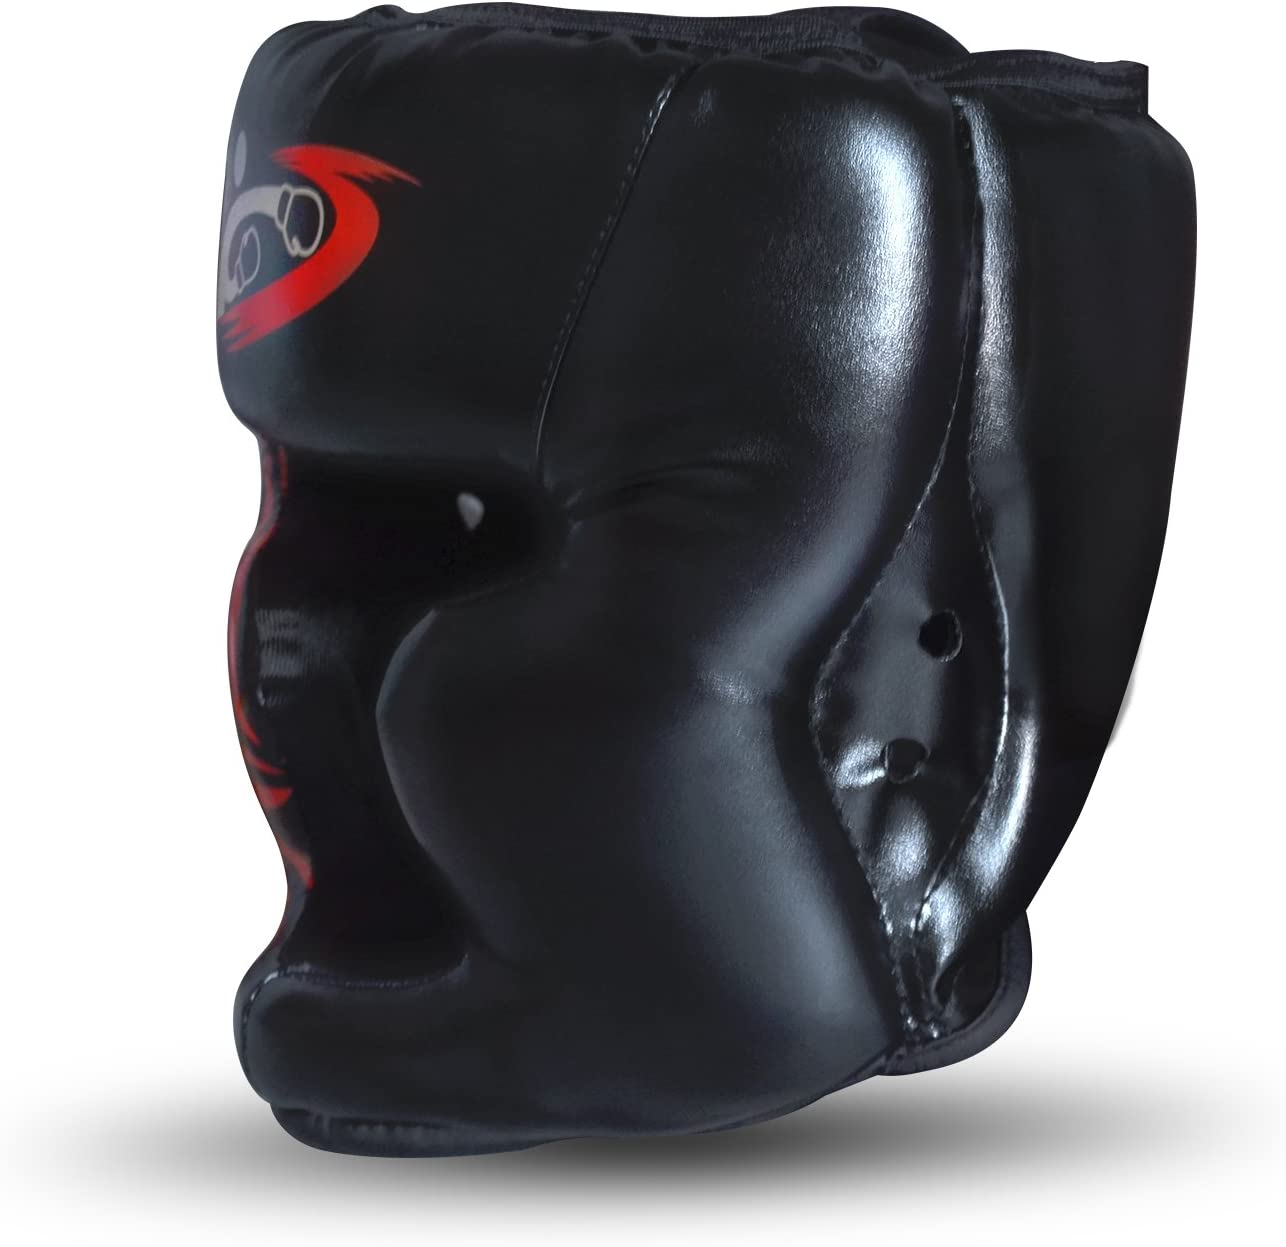 Details about  /Boxing Helmet For Men PU Leather Adjustable Boxing Head Gear Half-pack Punching